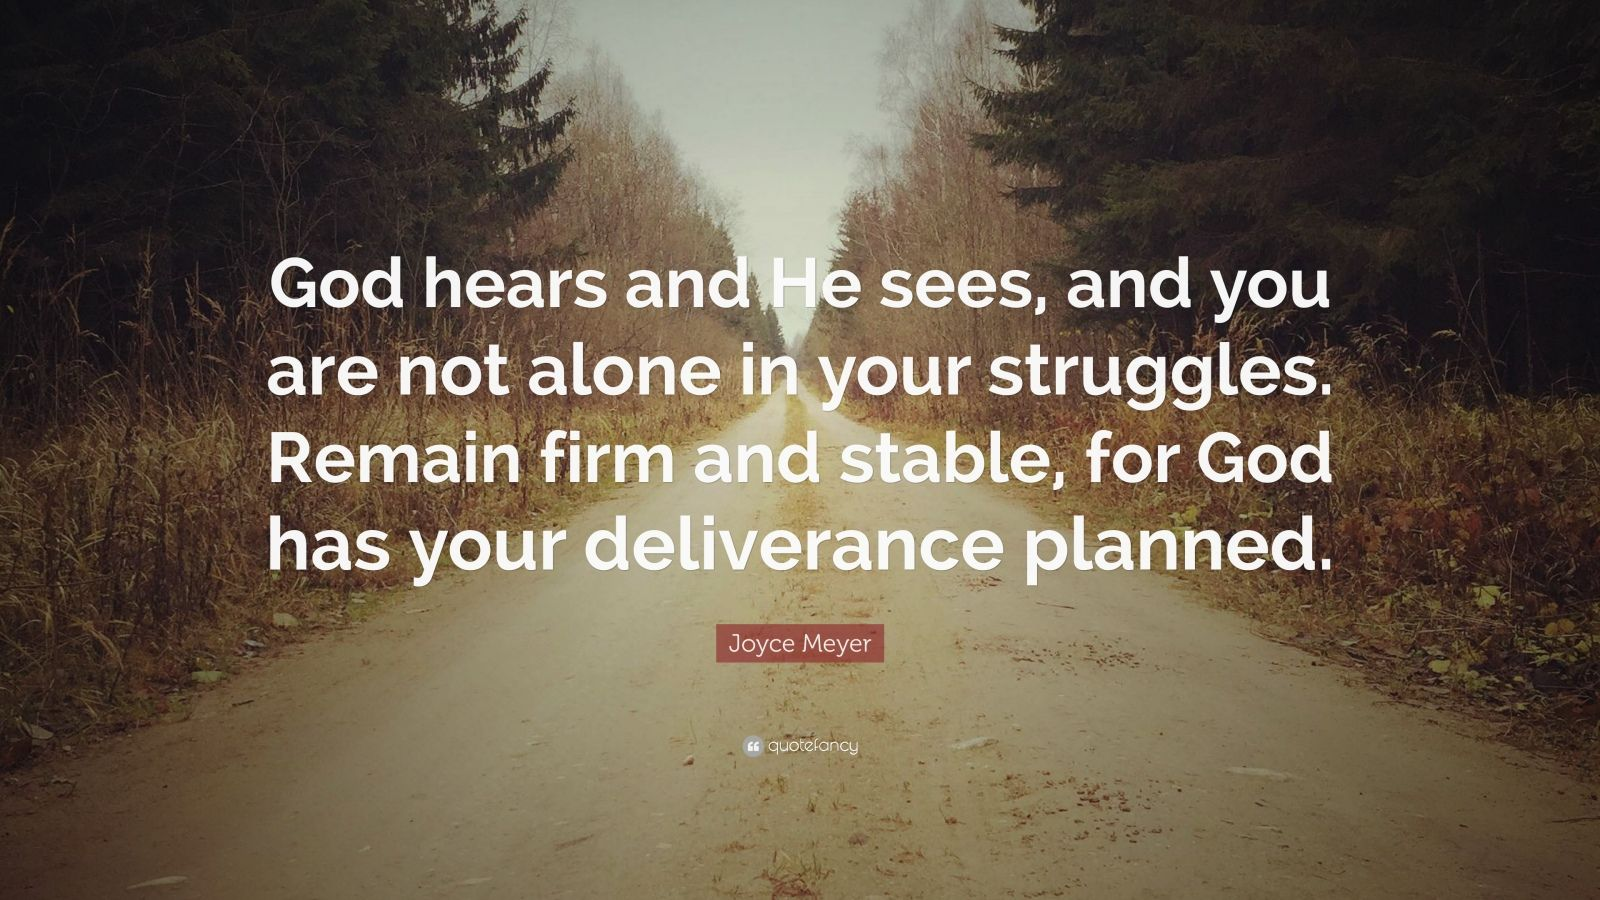 """Joyce Meyer Quote: """"God hears and He sees, and you are not alone in your struggles. Remain firm and stable, for God has your deliverance planned."""""""